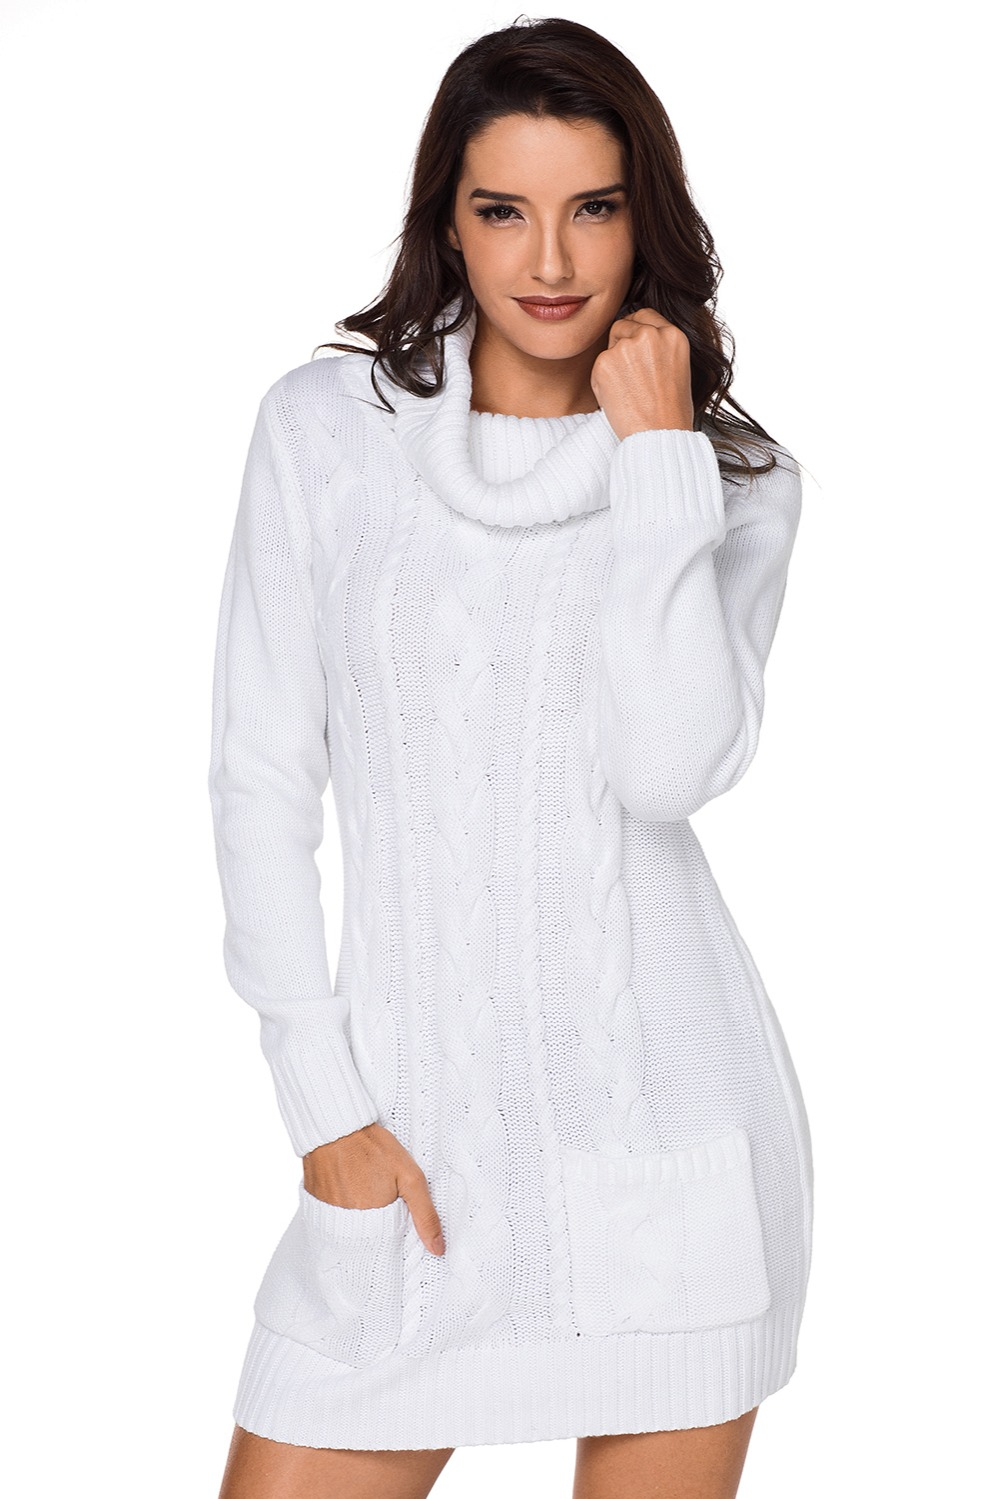 White-Cowl-Neck-Cable-Knit-Sweater-Dress-LC27836-1-5